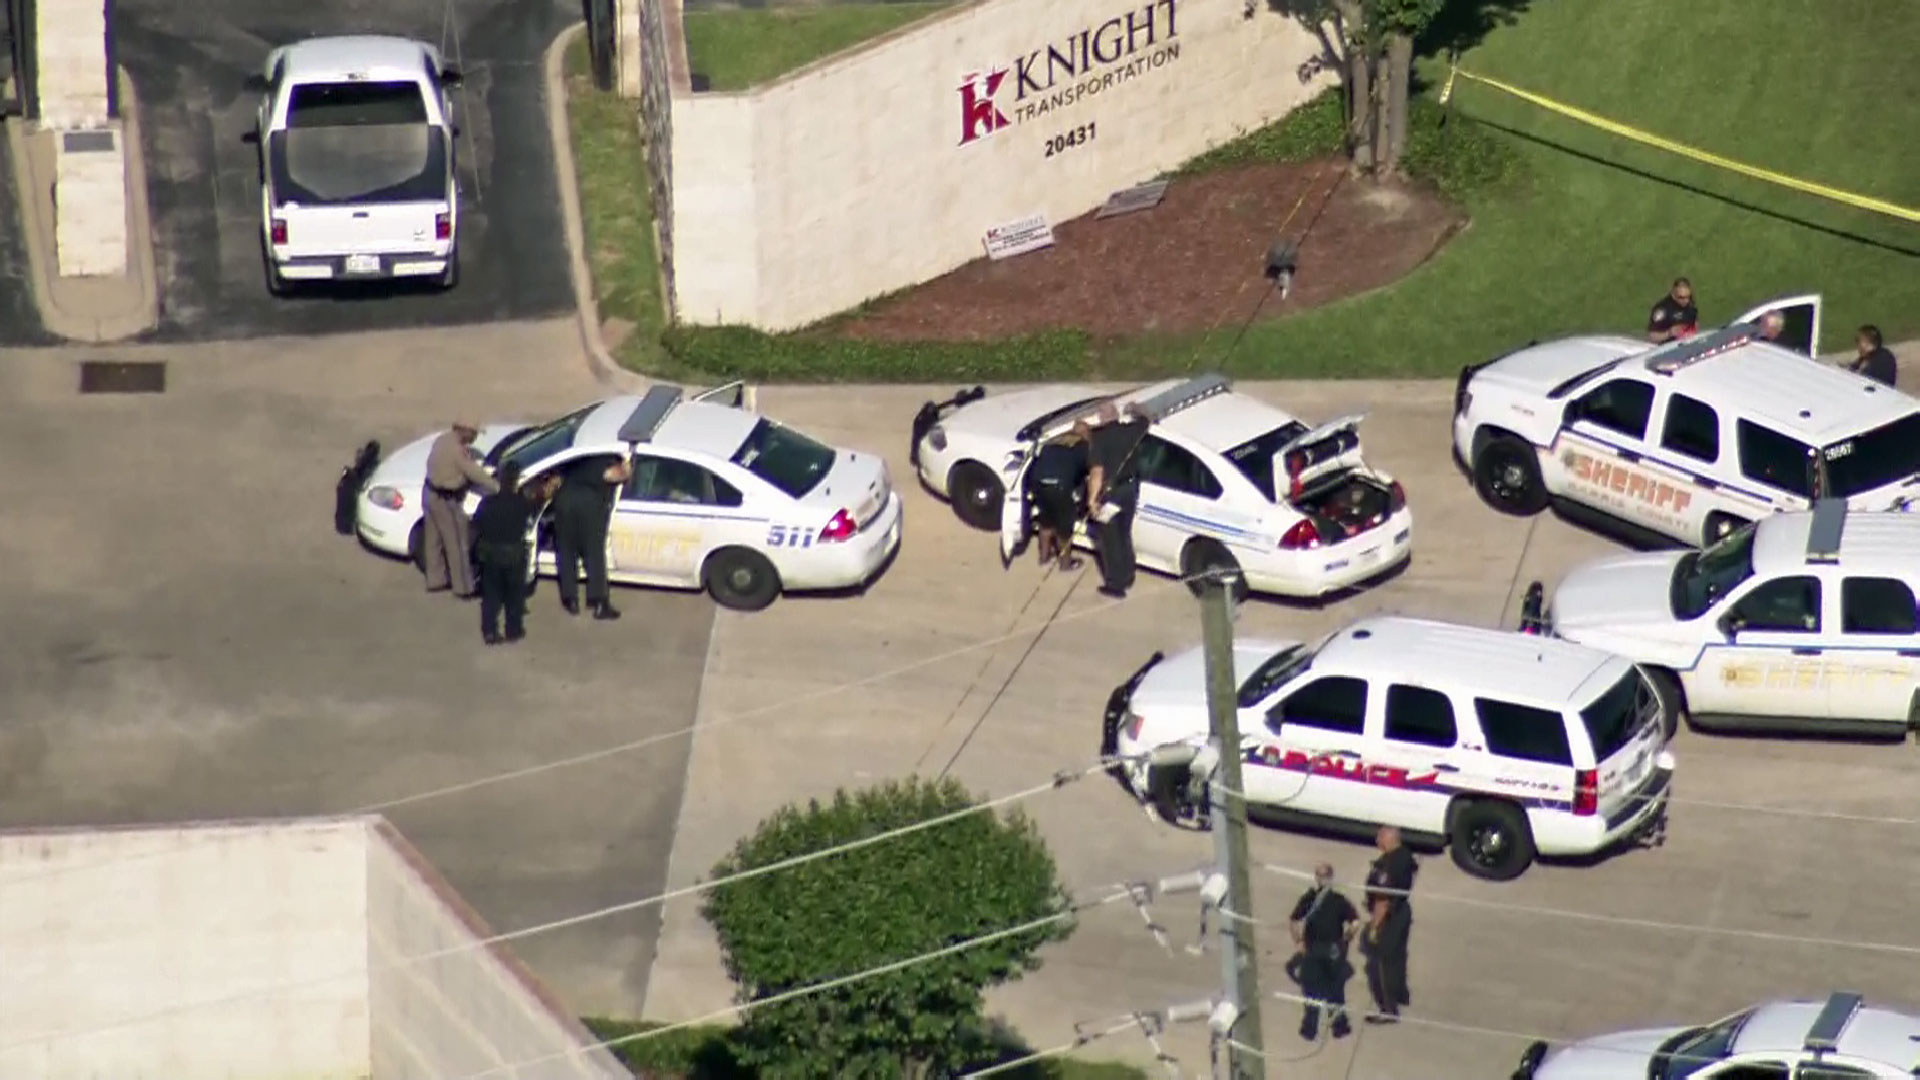 Marion Guy Williams, 65, returned to Knight Transportation's Katy Service Center on Tuesday morning, where he shot and killed 35-year-old employee Mike Dawid, according to the Harris County Sheriff's Office.